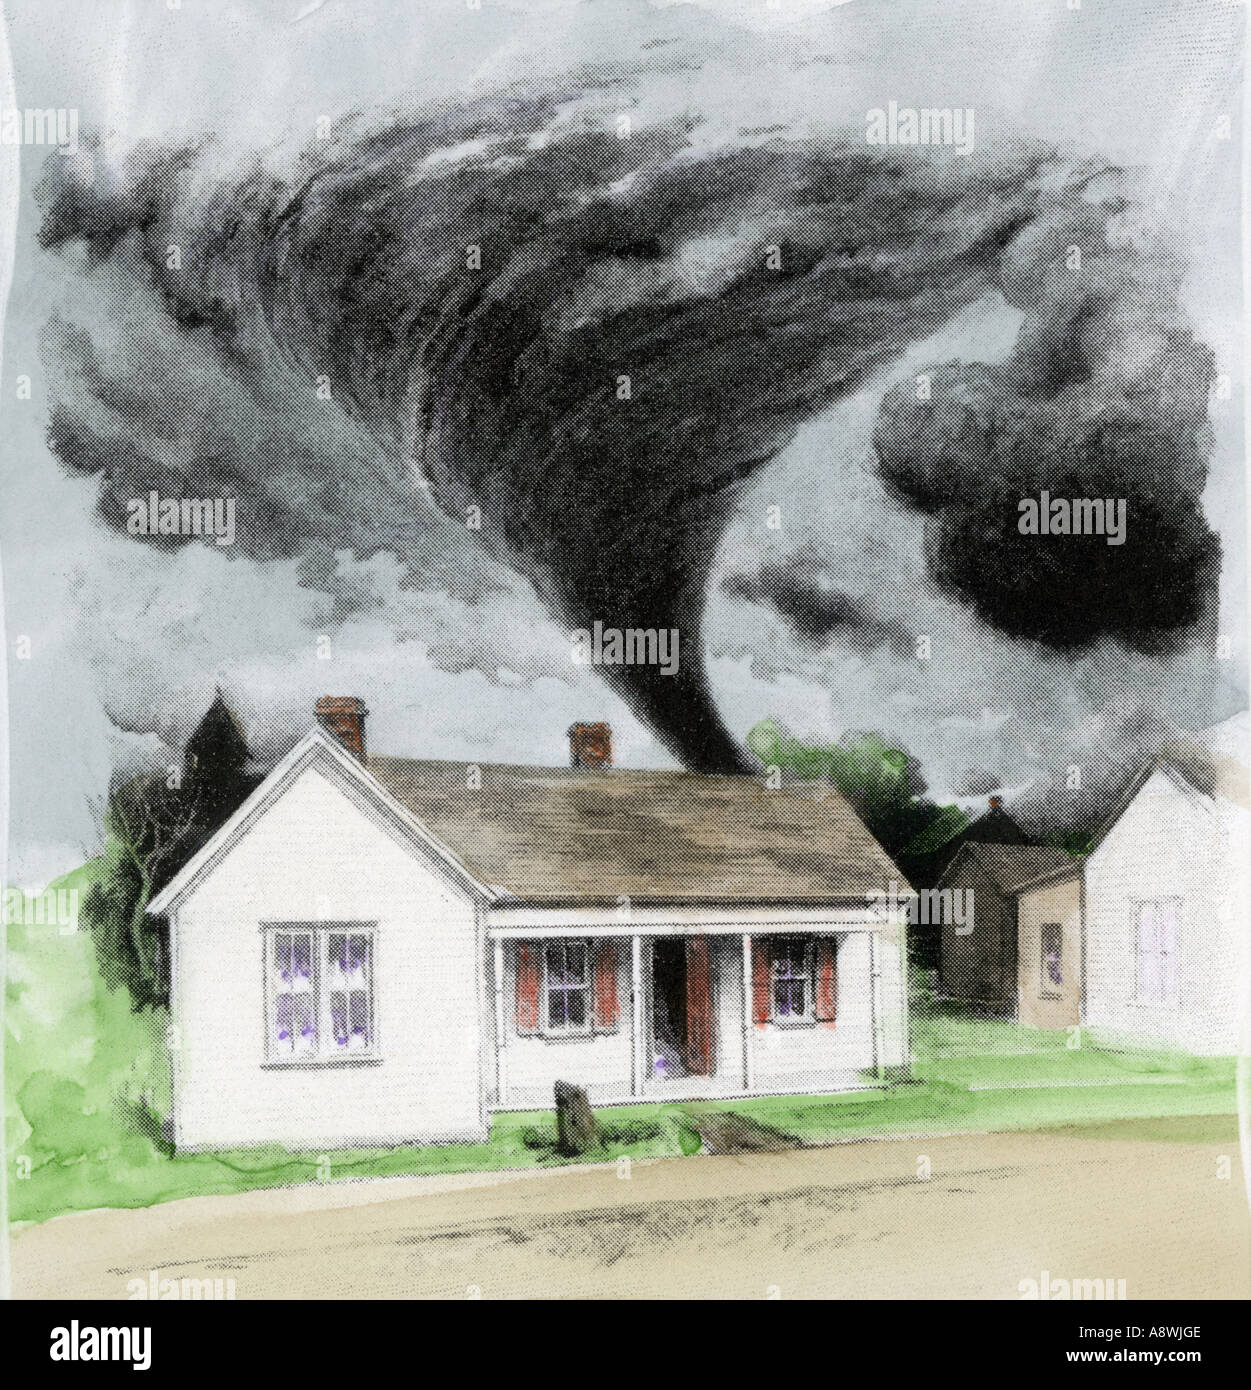 Tornado approaching a house in Kirksville Maryland April 27 1899. Hand-colored halftone of an illustration - Stock Image